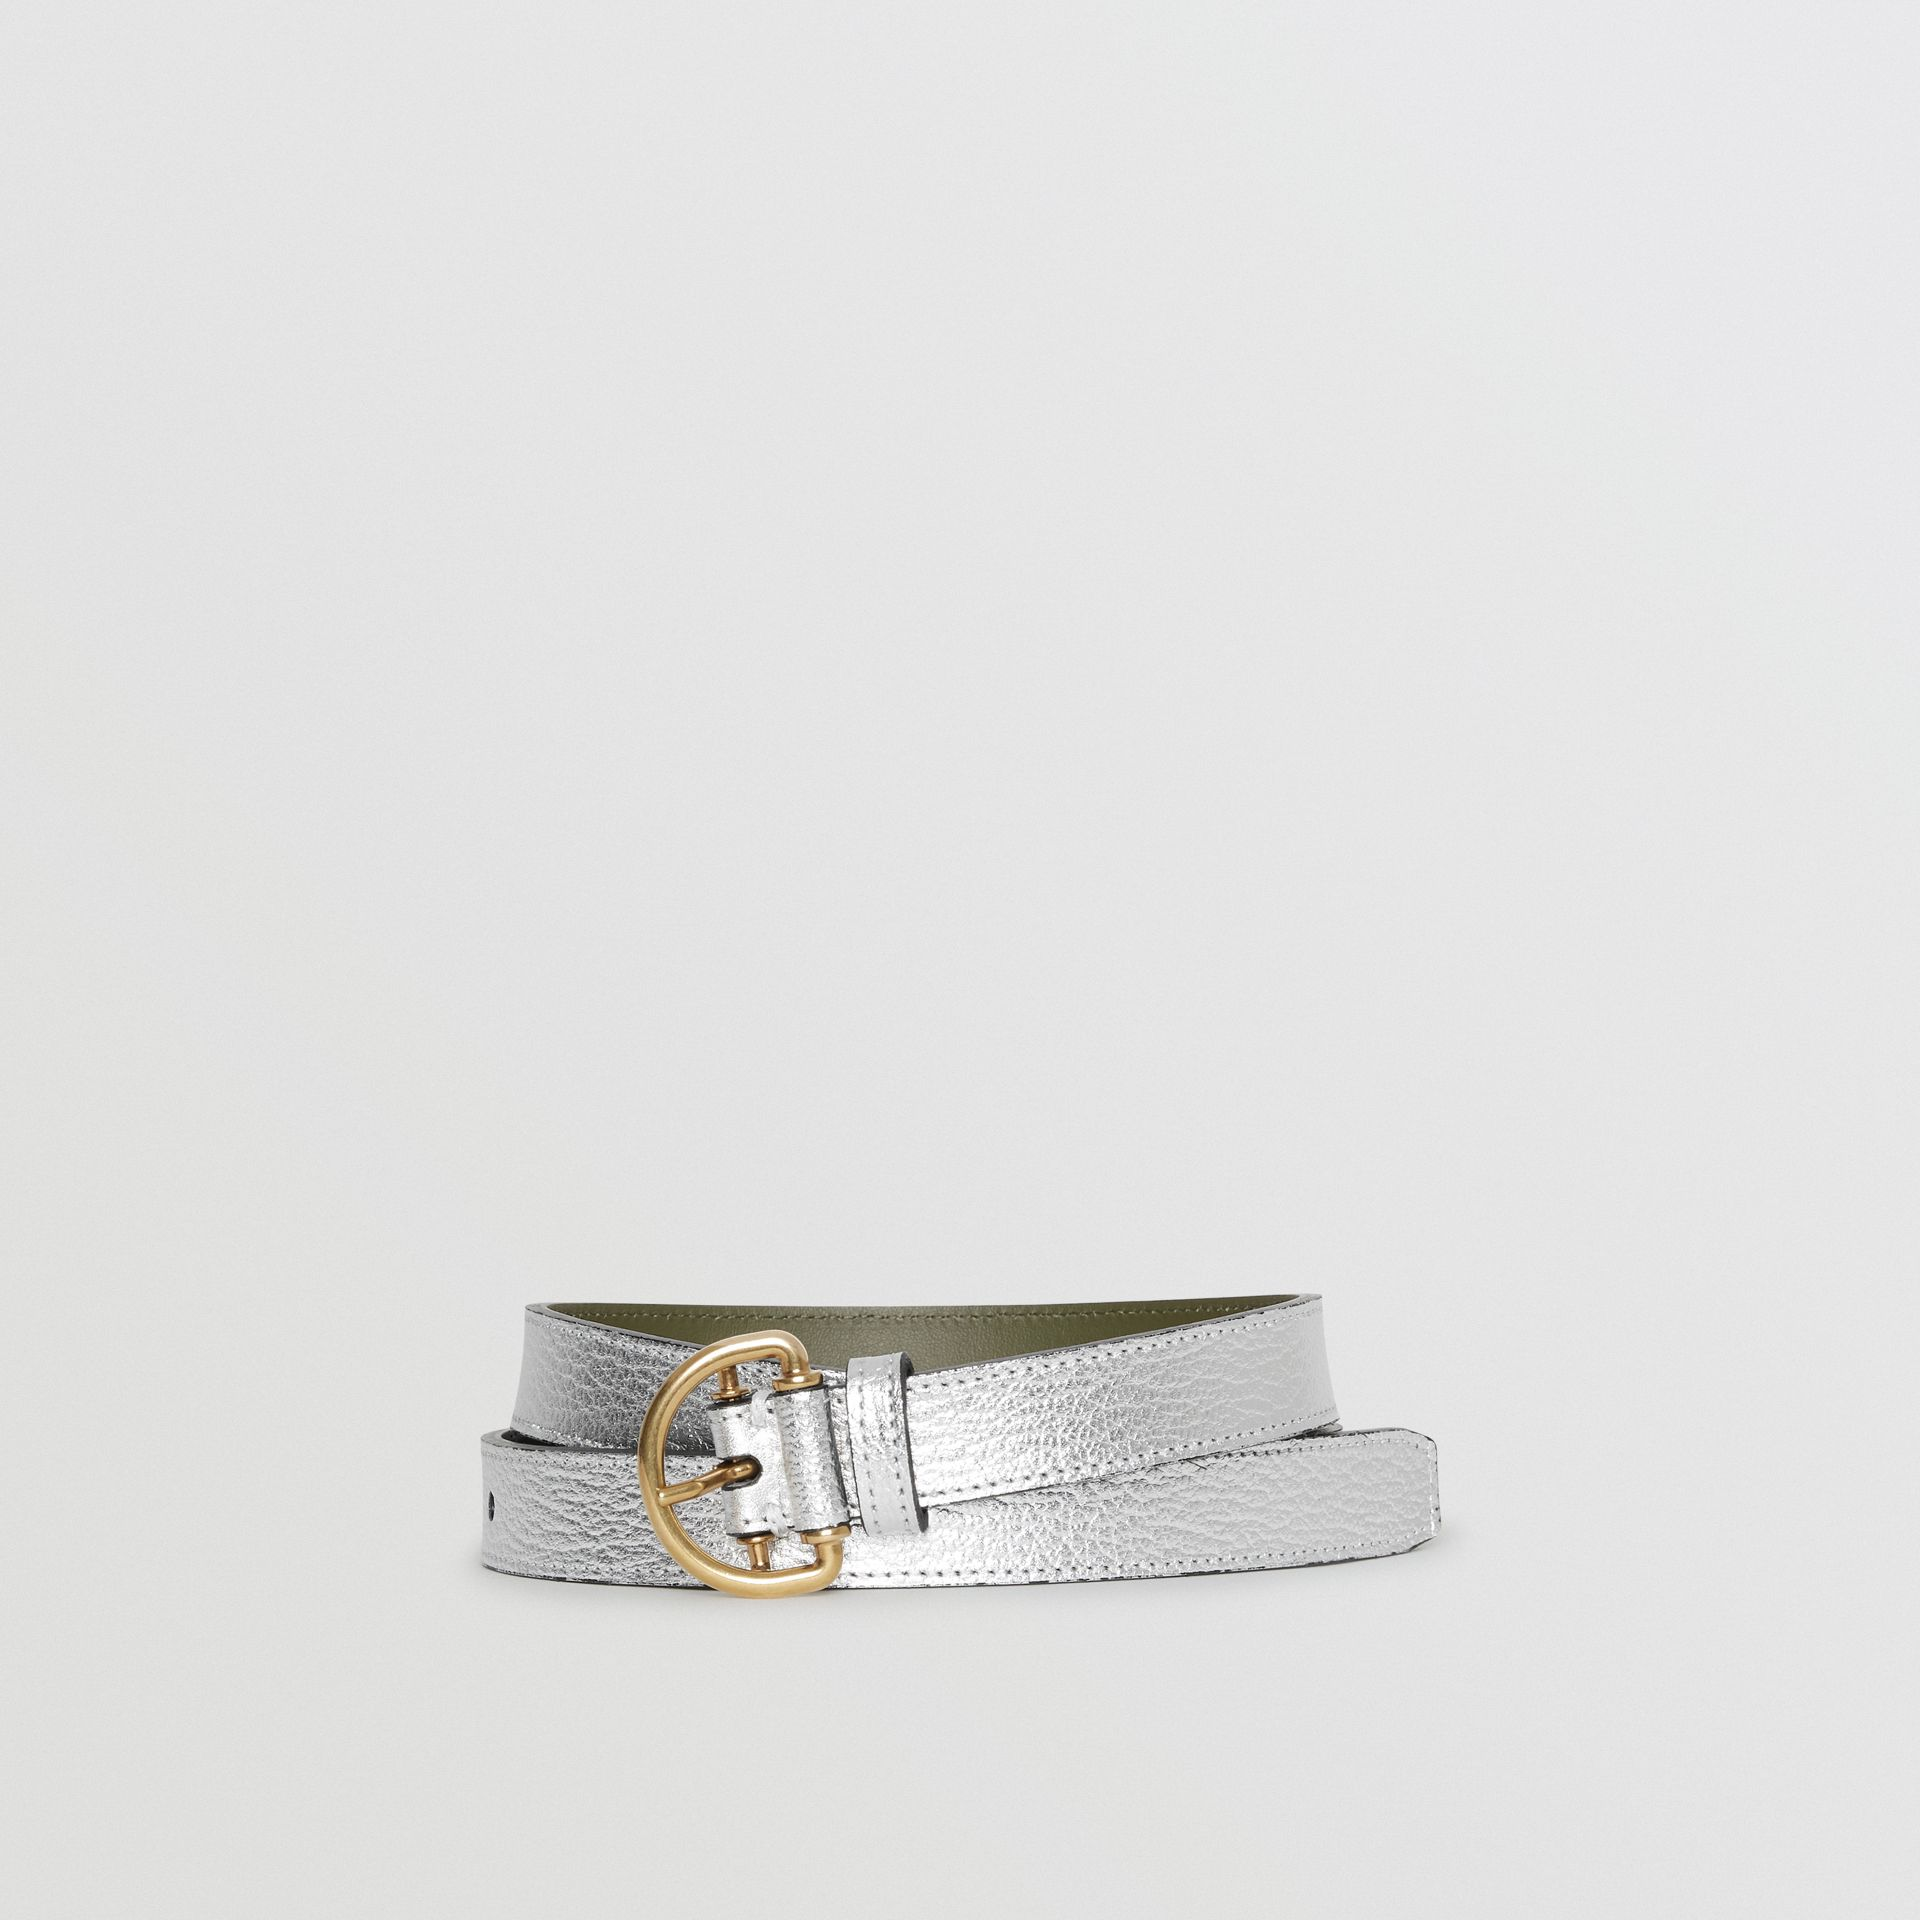 Slim Metallic Leather D-ring Belt in Silver/dark Olive - Women | Burberry - gallery image 0